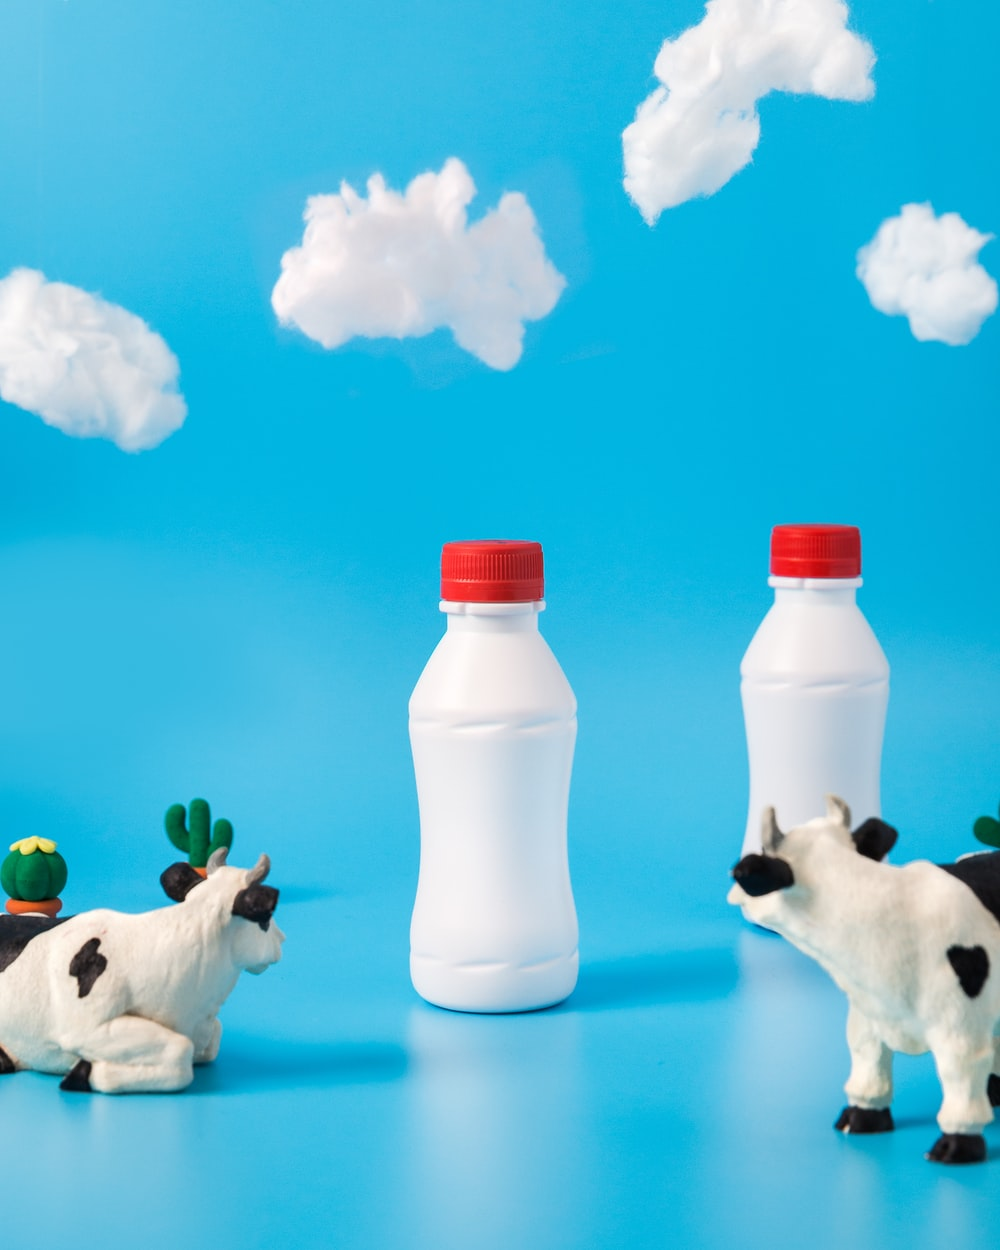 two black-and-white dairy cows looking on white bottles